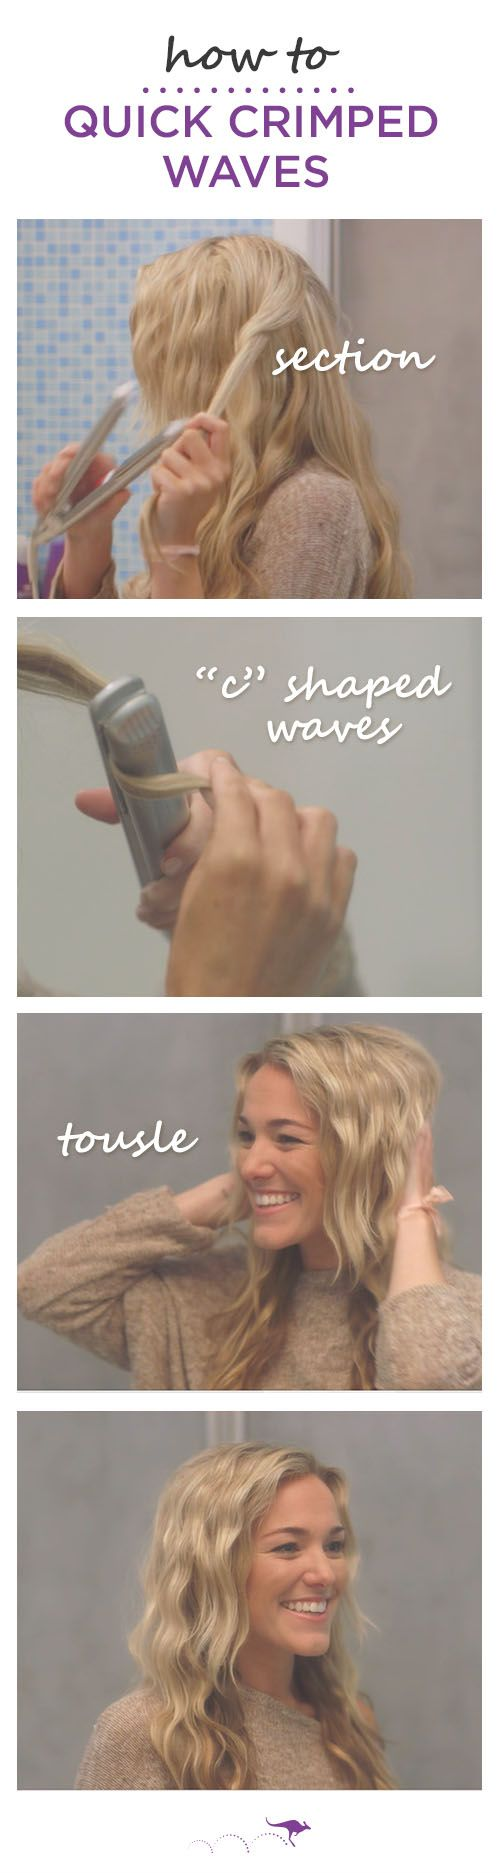 "How To: Quick Crimped Waves  |  Get those next-day-braid waves without the wait  |  1. Section hair starting from the bottom layer & clip back sections  •  2. Using a flat iron create alternating ""C"" shaped waves, sliding the iron slowly down from root to tip  •  3. Once strands are crimped, tousle for added volume. And for fuller hair, use Aussie Aussome Volume Shampoo & Conditioner."